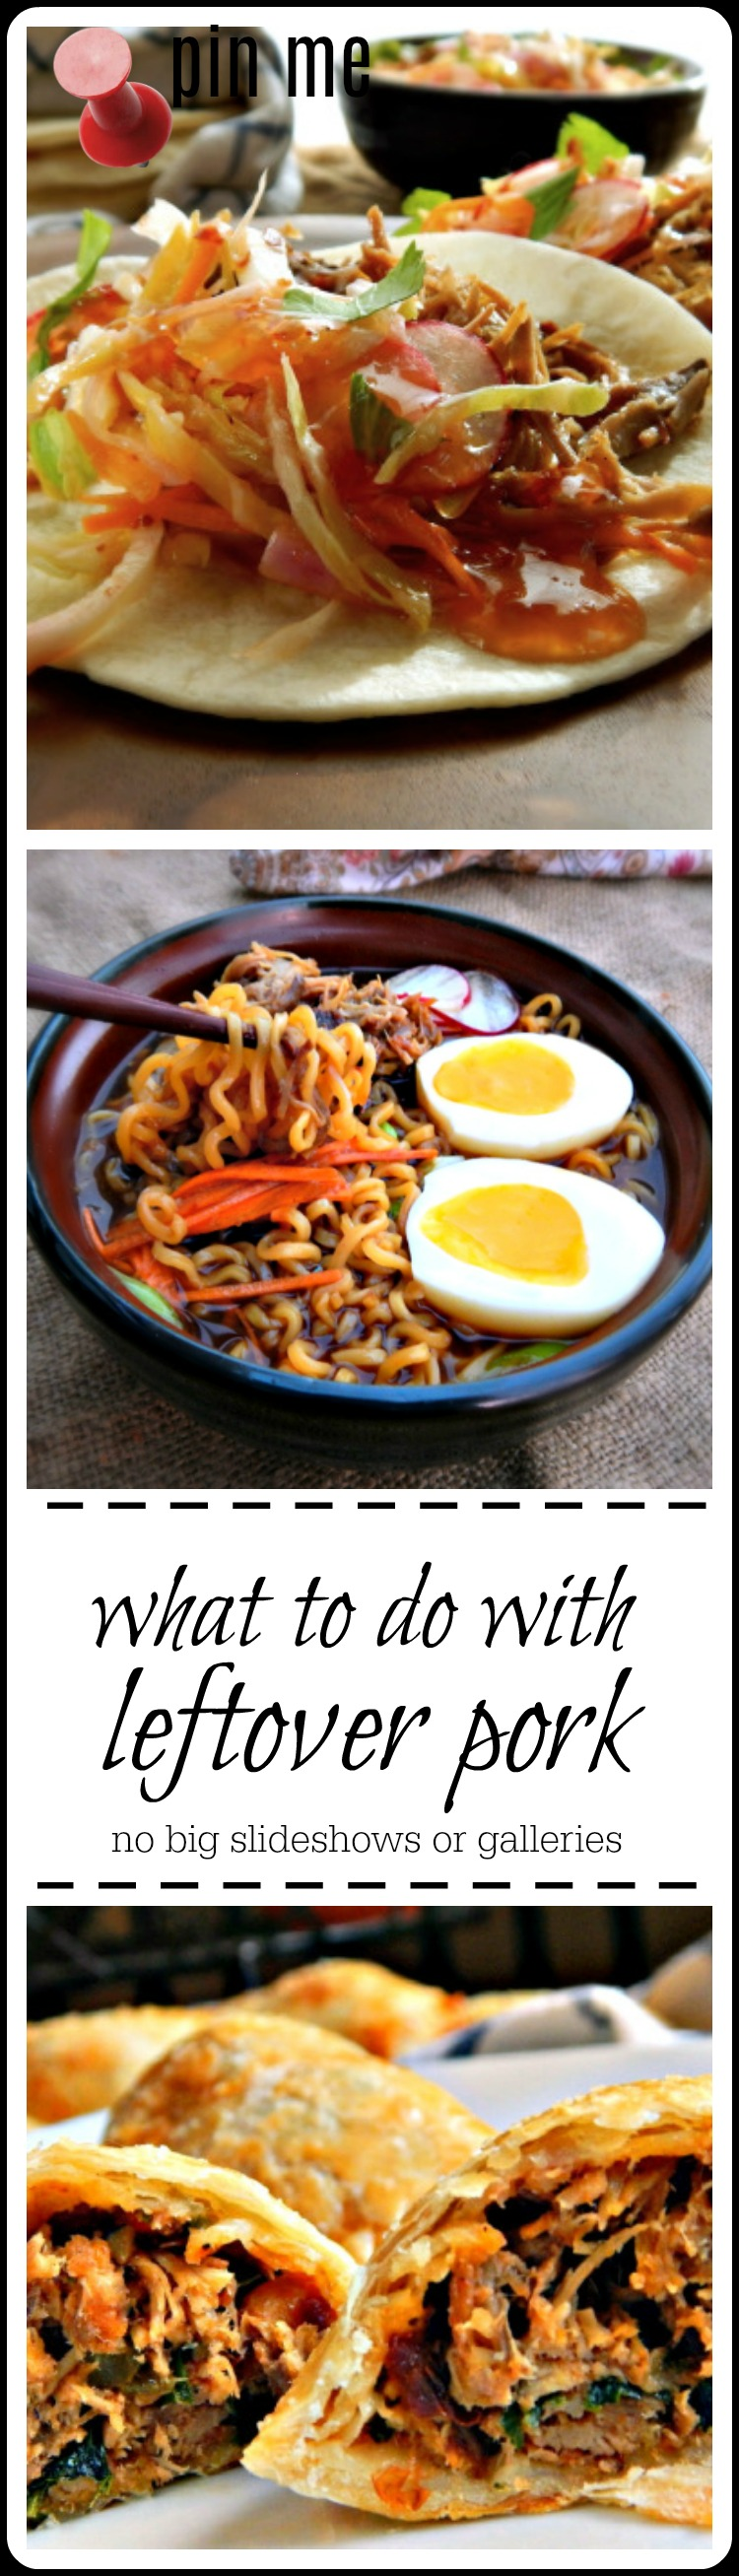 over 25 ways to refashion leftover pork that your family will eat! Fun & creative and no big galleries to wade through!